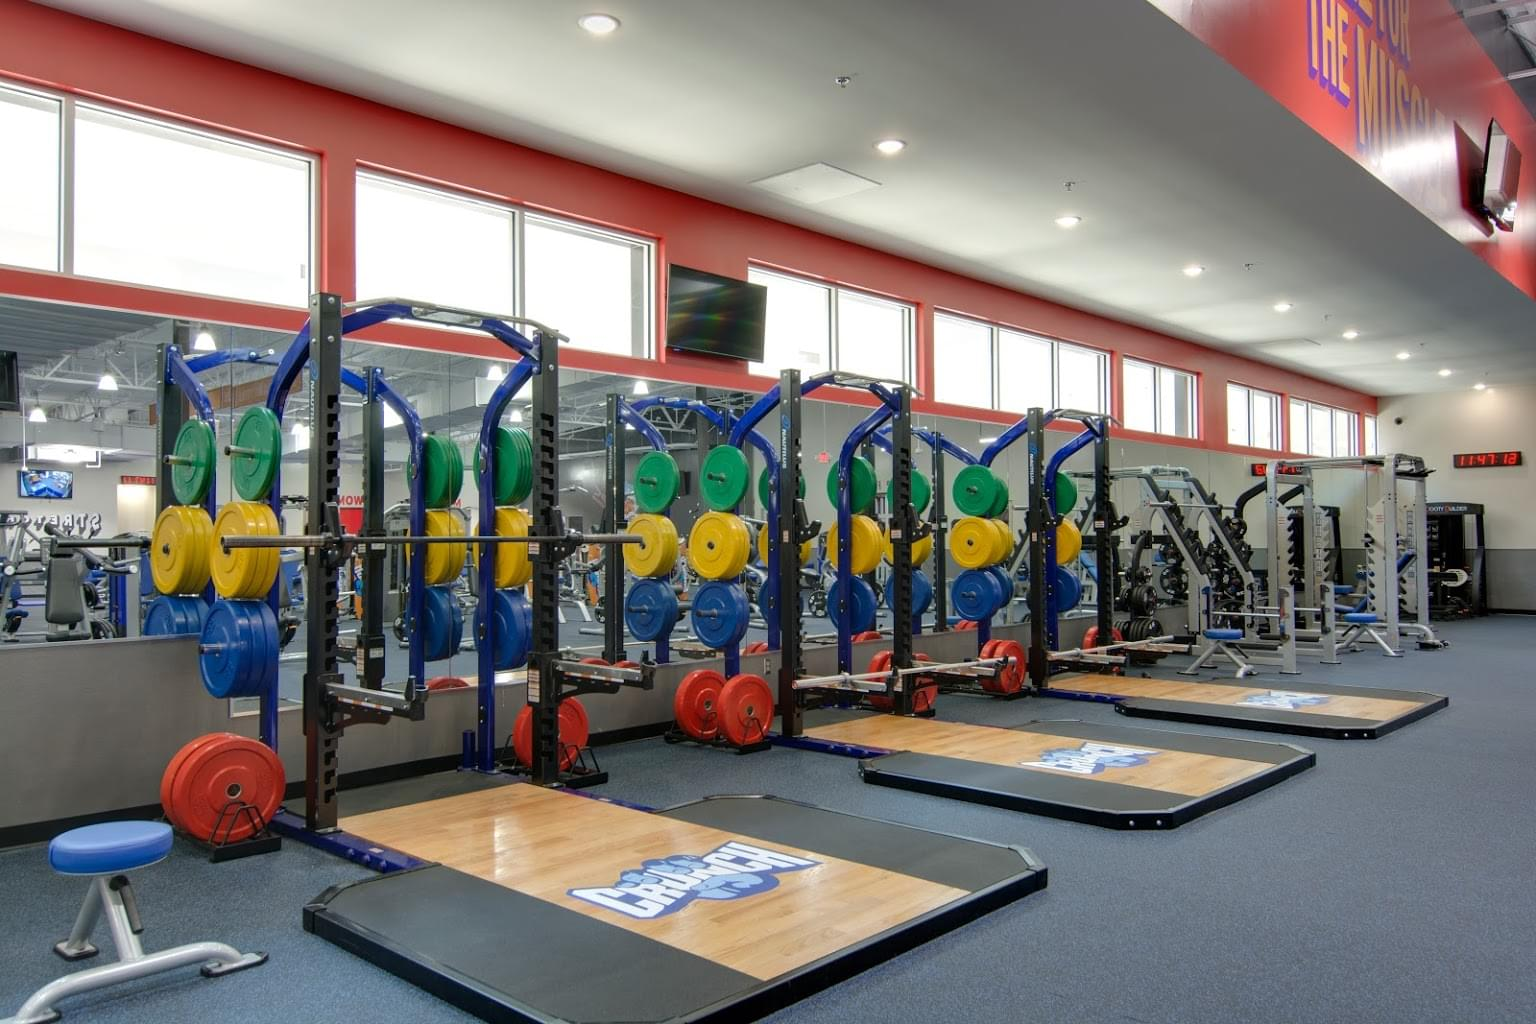 squat racks at Crunch Fitness Midlothian Gym and Health Club in Richmond, VA